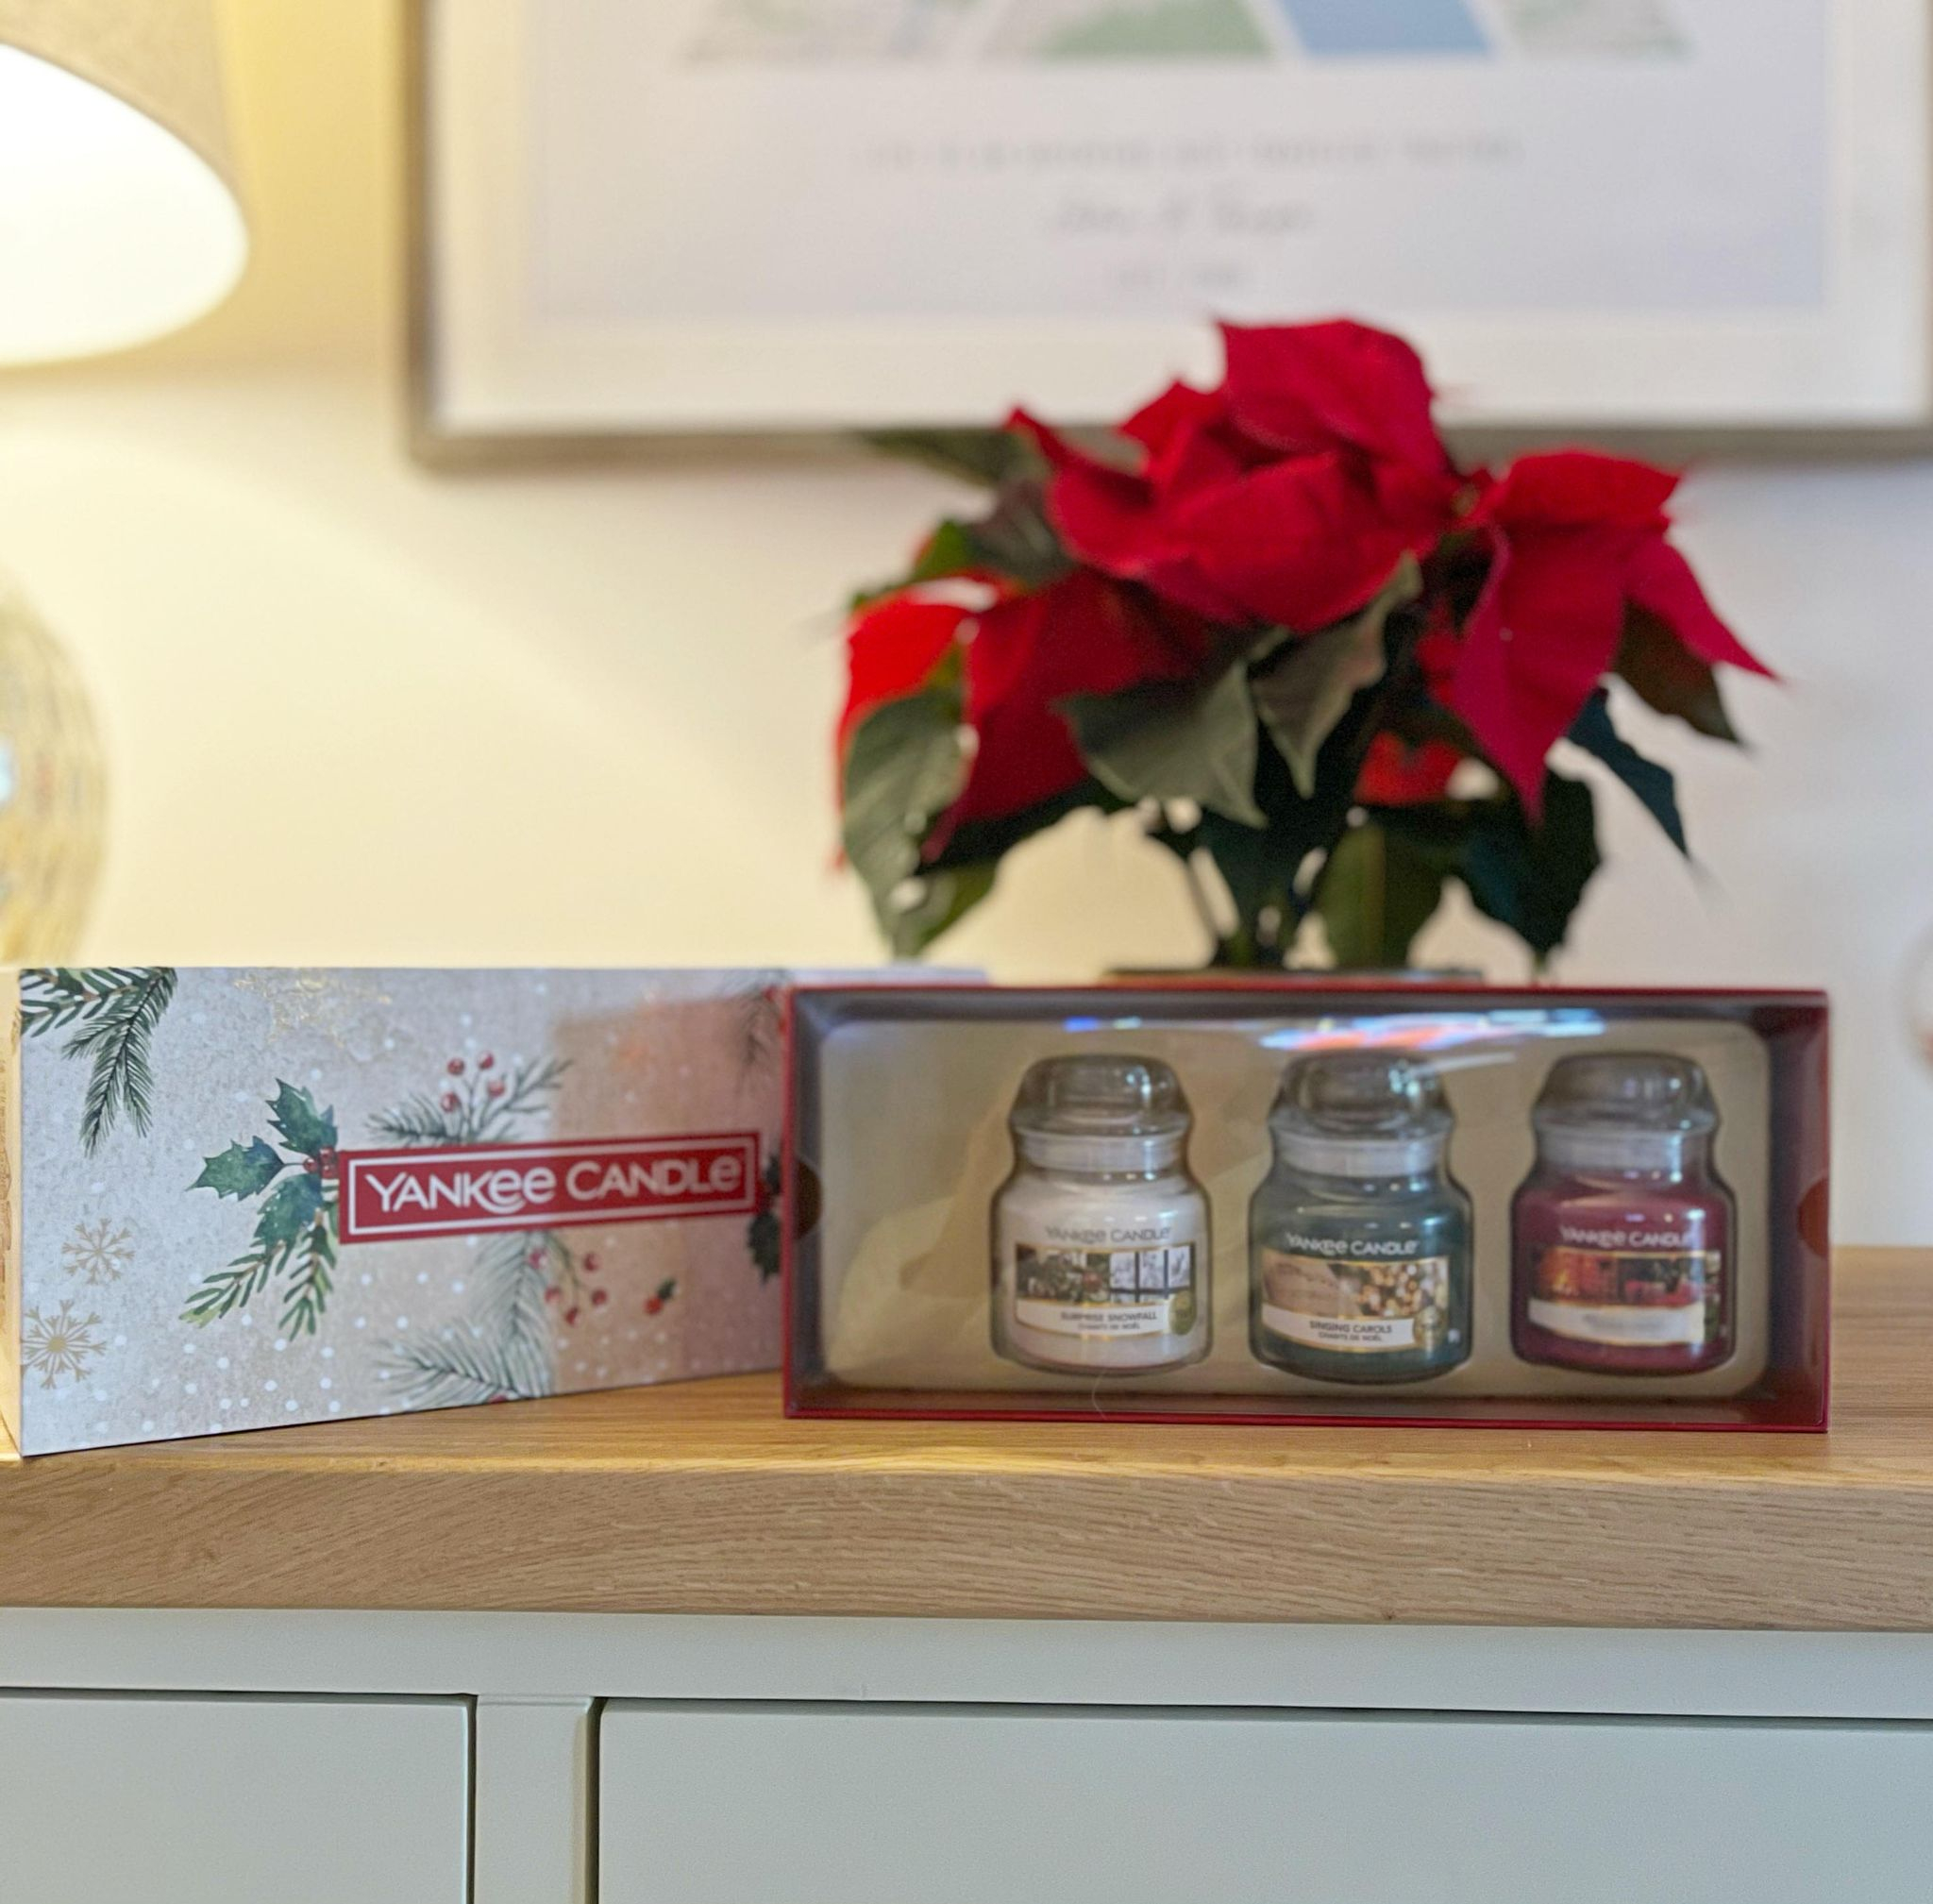 Yankee Candle® 3 Small Jar Candle Gift Set